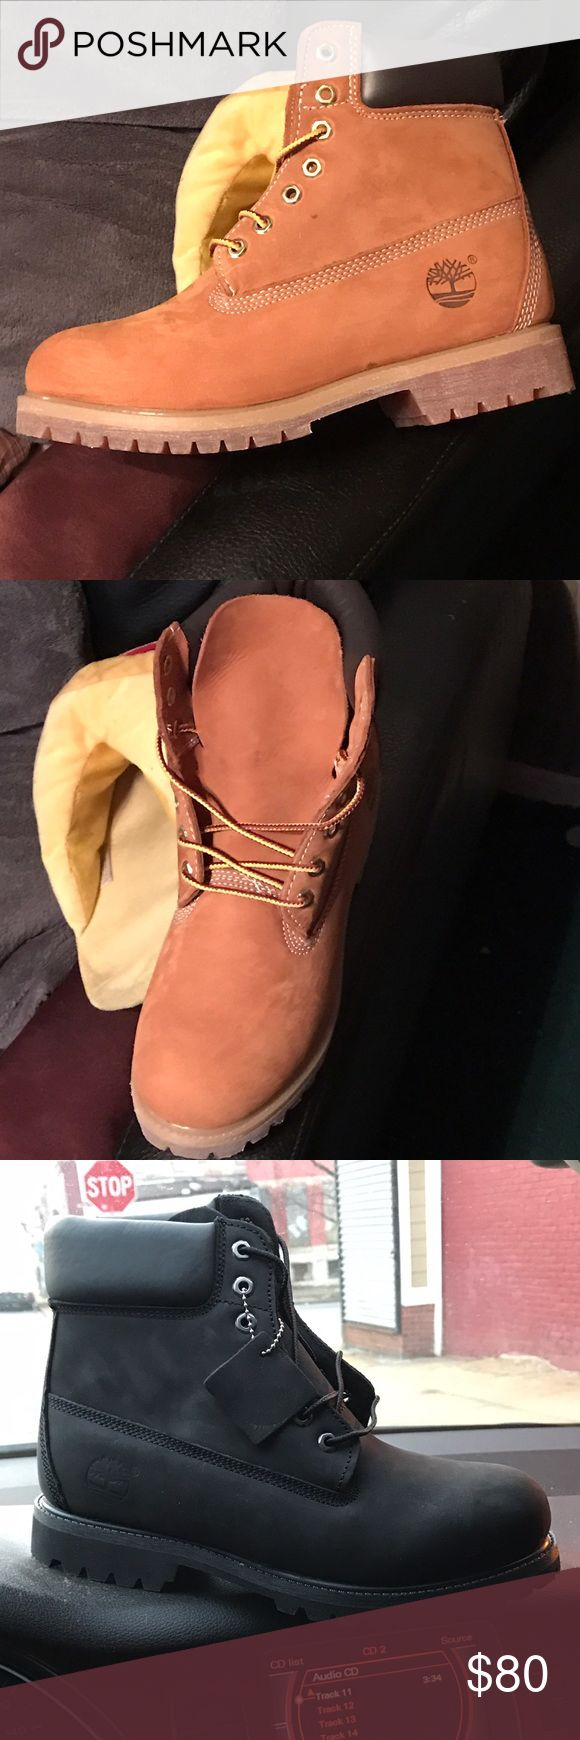 Black Timberland  Butter Timberlands Black Timberland $90 Sizes 7-13 Butter Timberlands $80 Sizes 7-14 Men sizes  No Toddlers  2for$150 (2butters) 2for$160 (1butter,1black) 2for$170 (2black) Read Less Timberland Shoes Boots